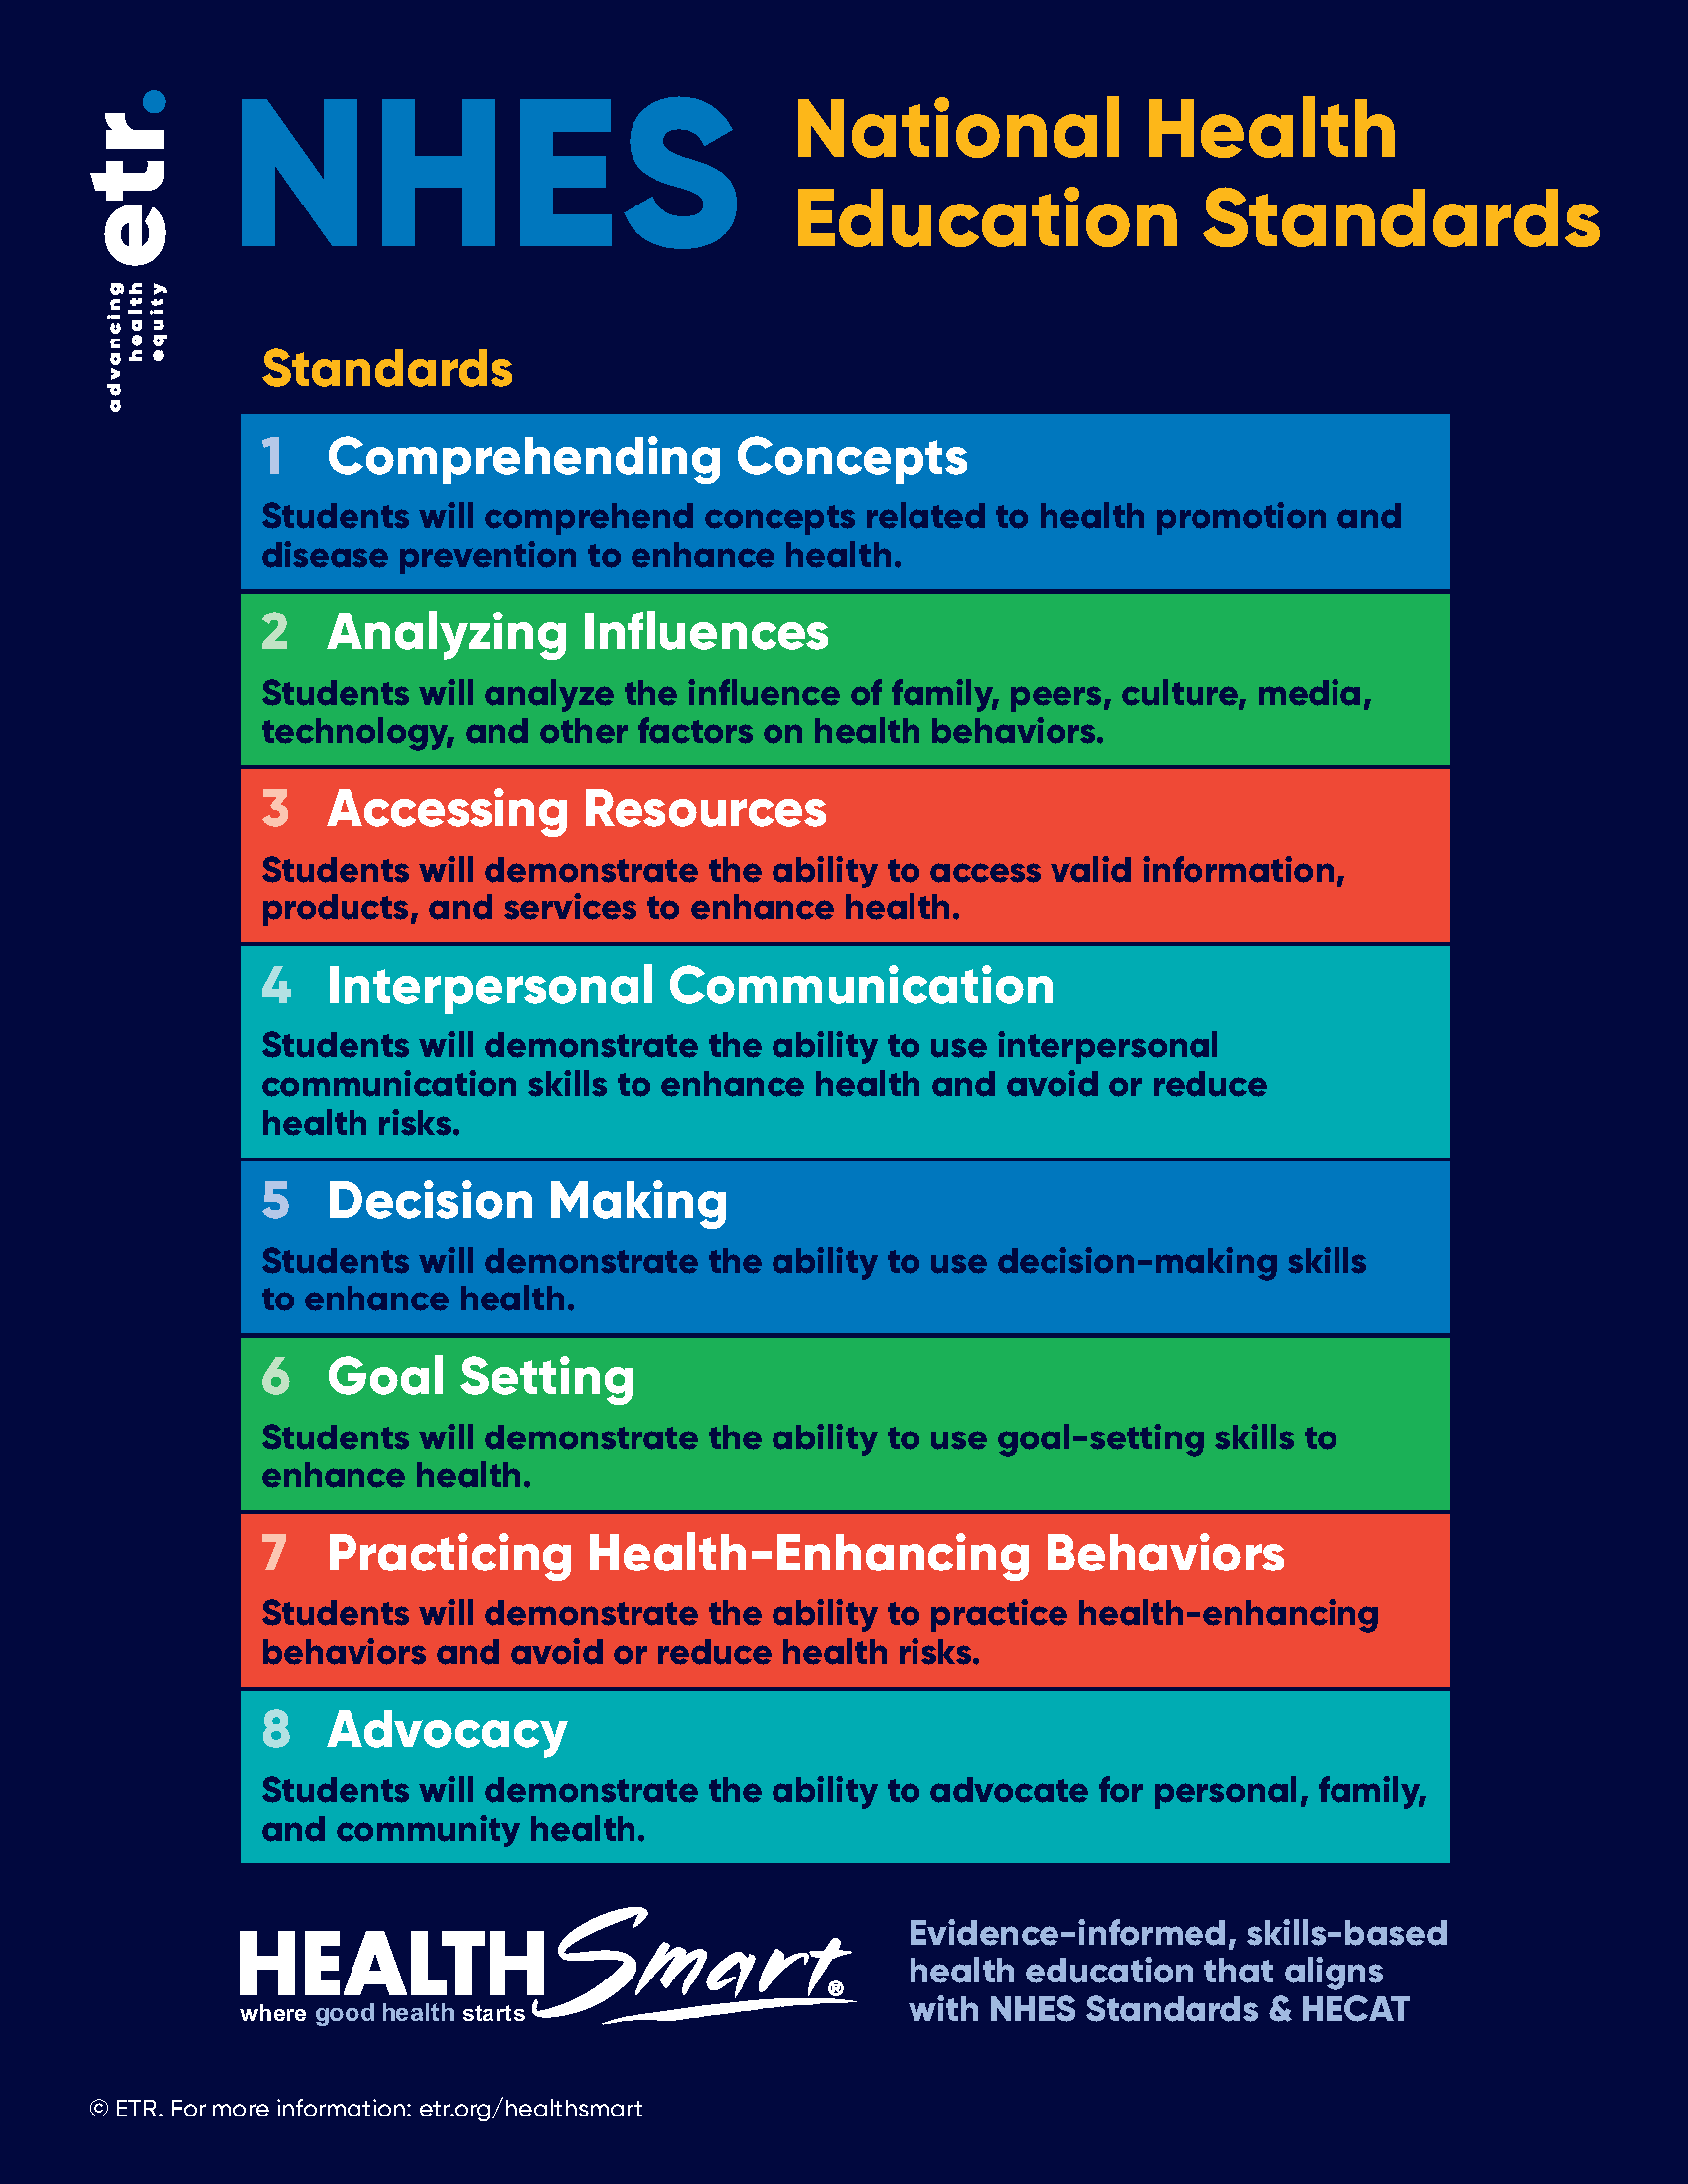 National Health Education Standards blue poster